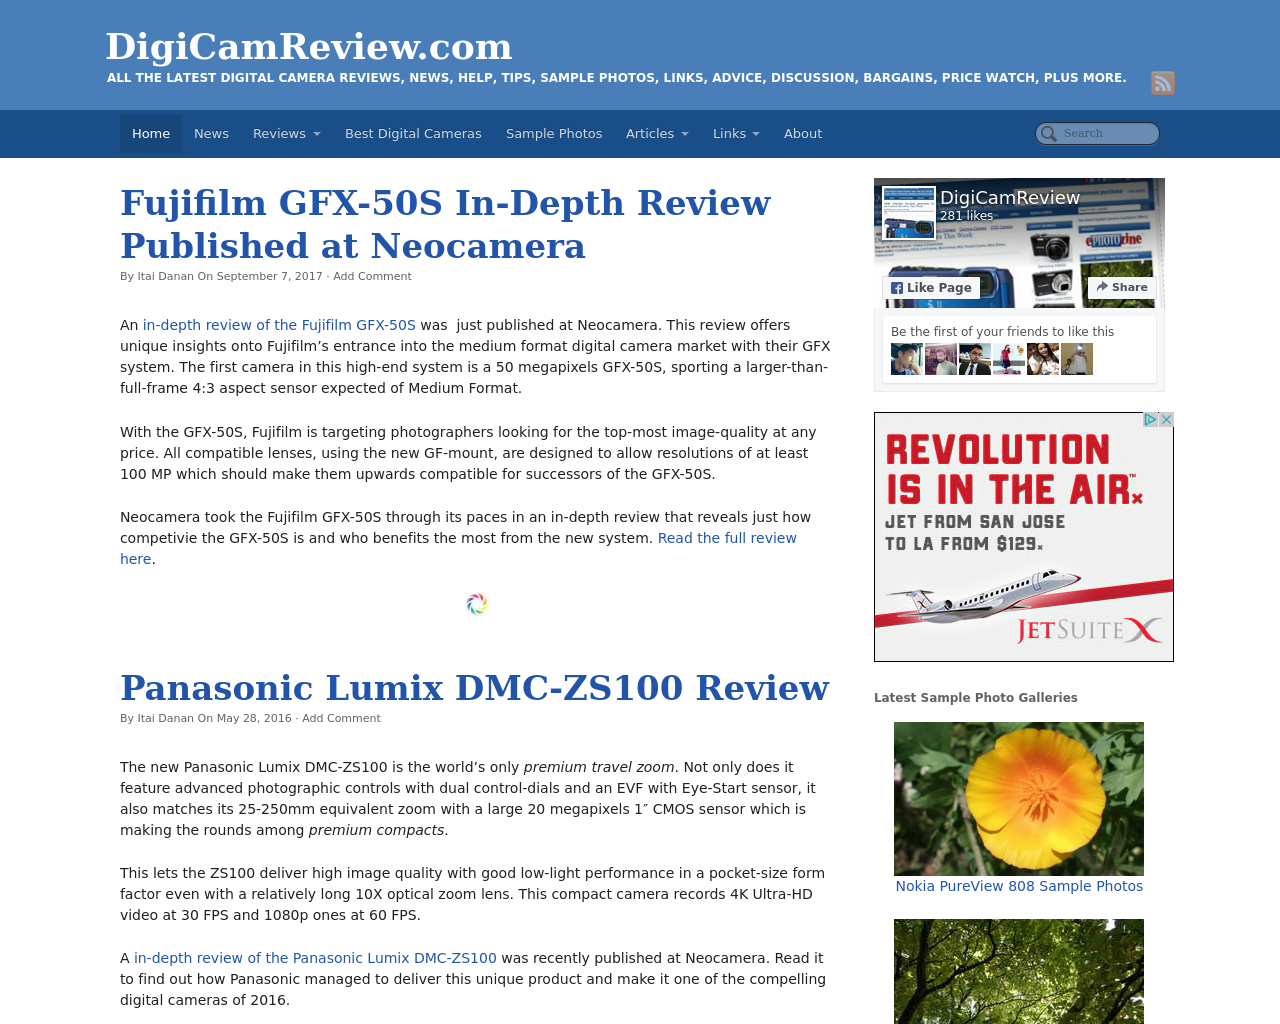 DigiCamReview-Advertising-Reviews-Pricing